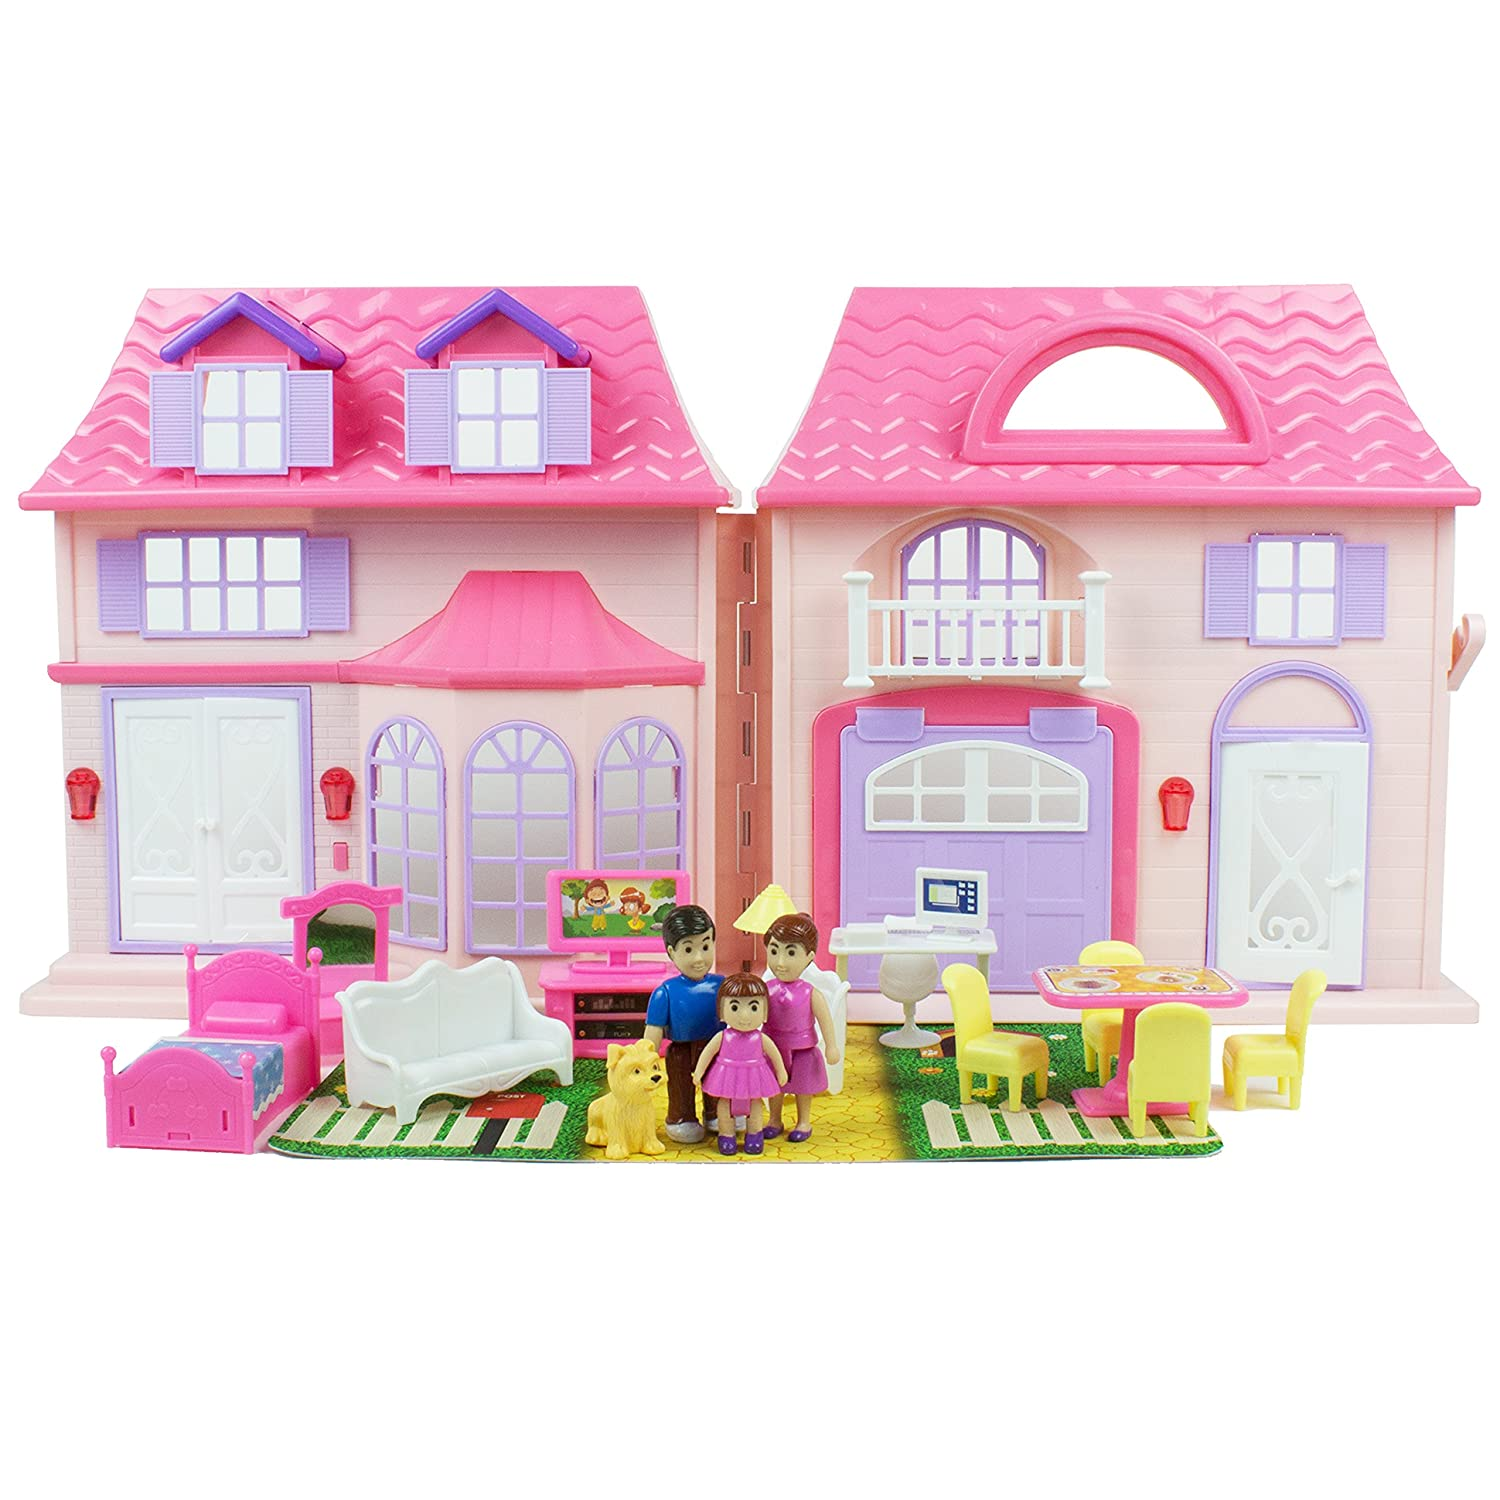 Boley Pretend Play American Doll House Toy Playset - 21 Piece Portable Dollhouse - Perfect Toddler Girls Playset - Toy Family, Pets, Kitchen Accessories, Lights, Sound, Doorbell, and More!